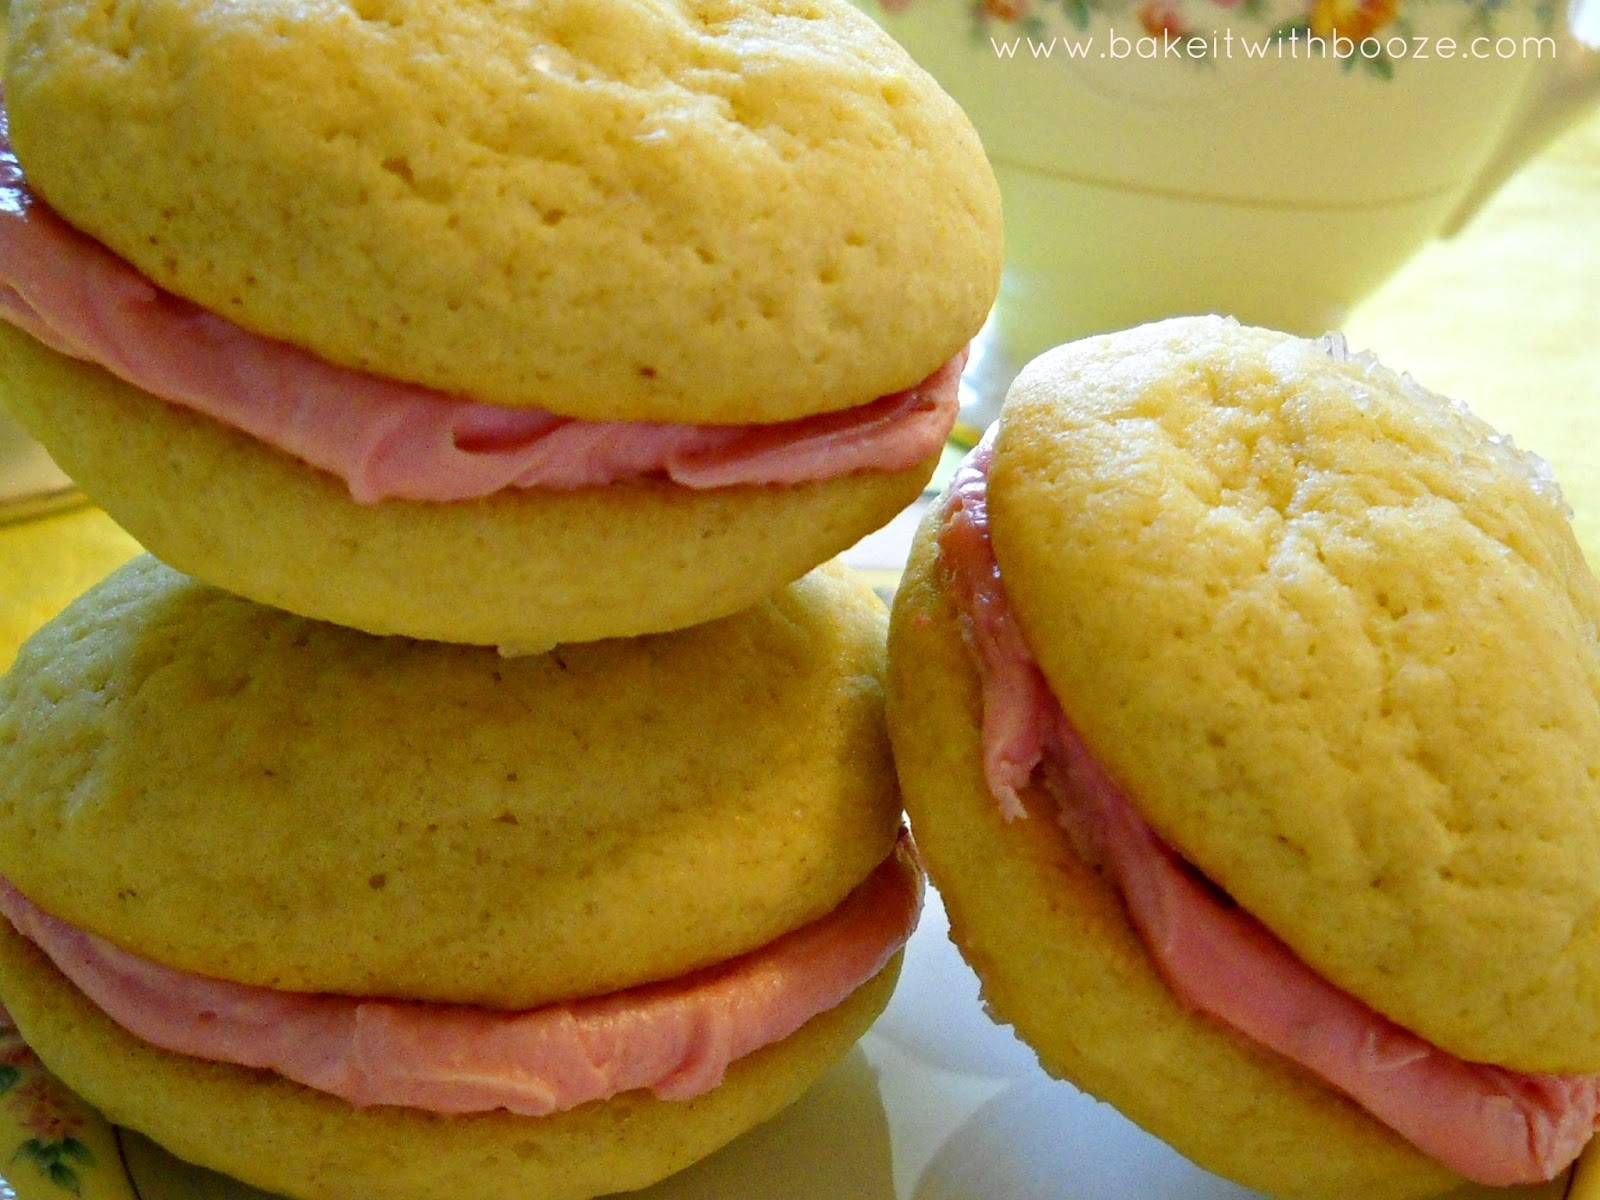 Pillowy lemon cookie sandwiched with luscious tart raspberry filling ...